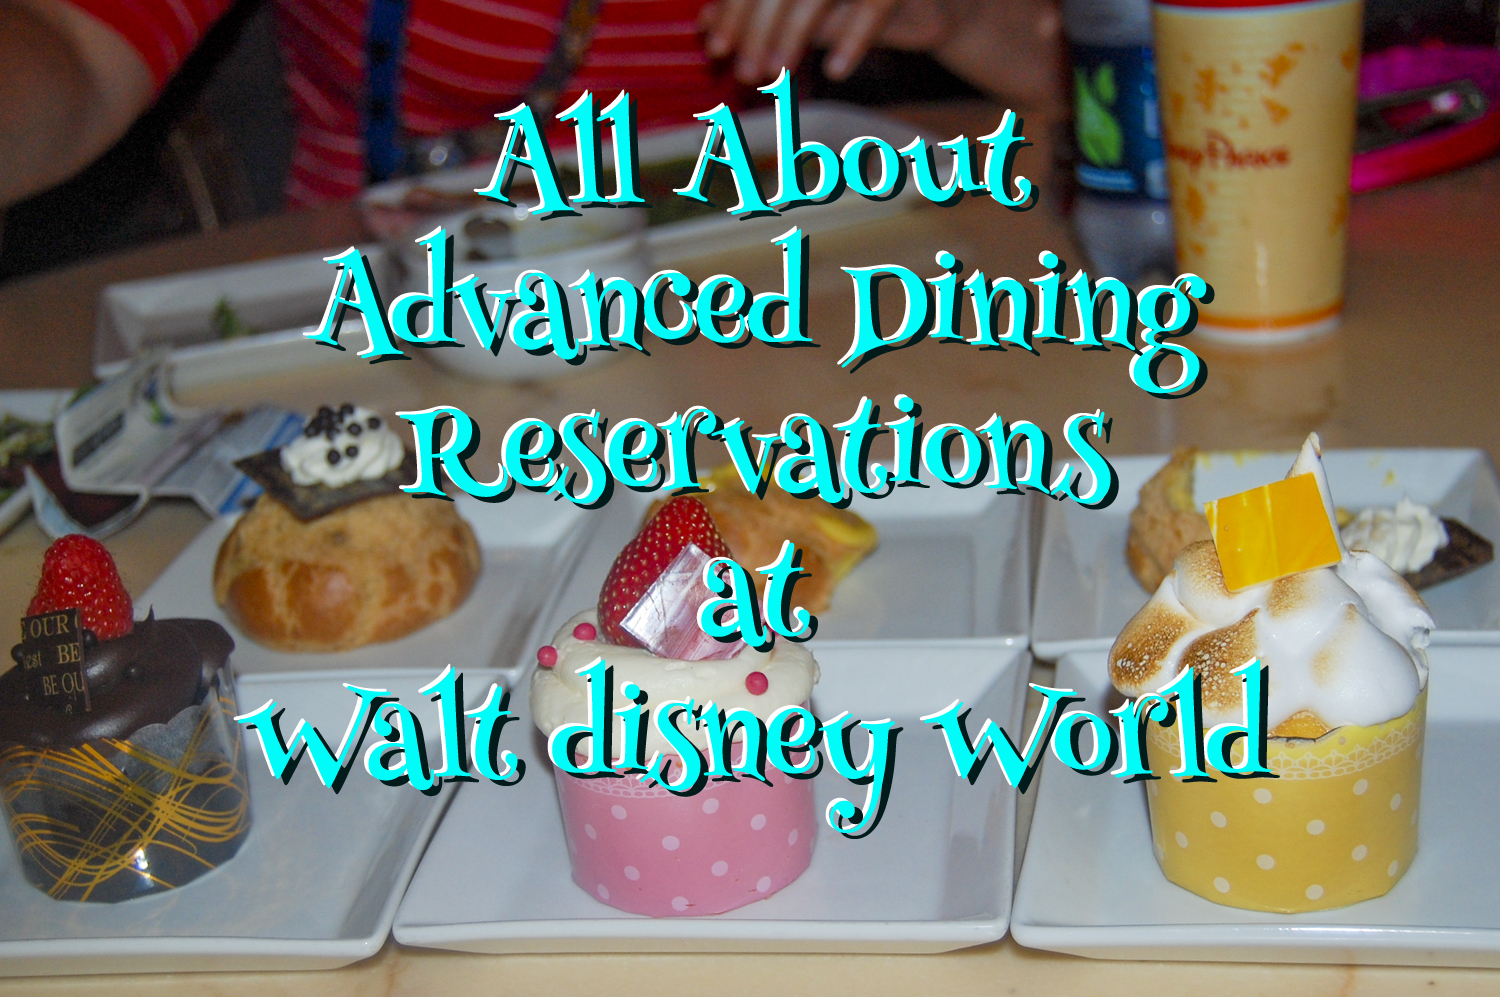 All About Advanced Dining Reservations Inset